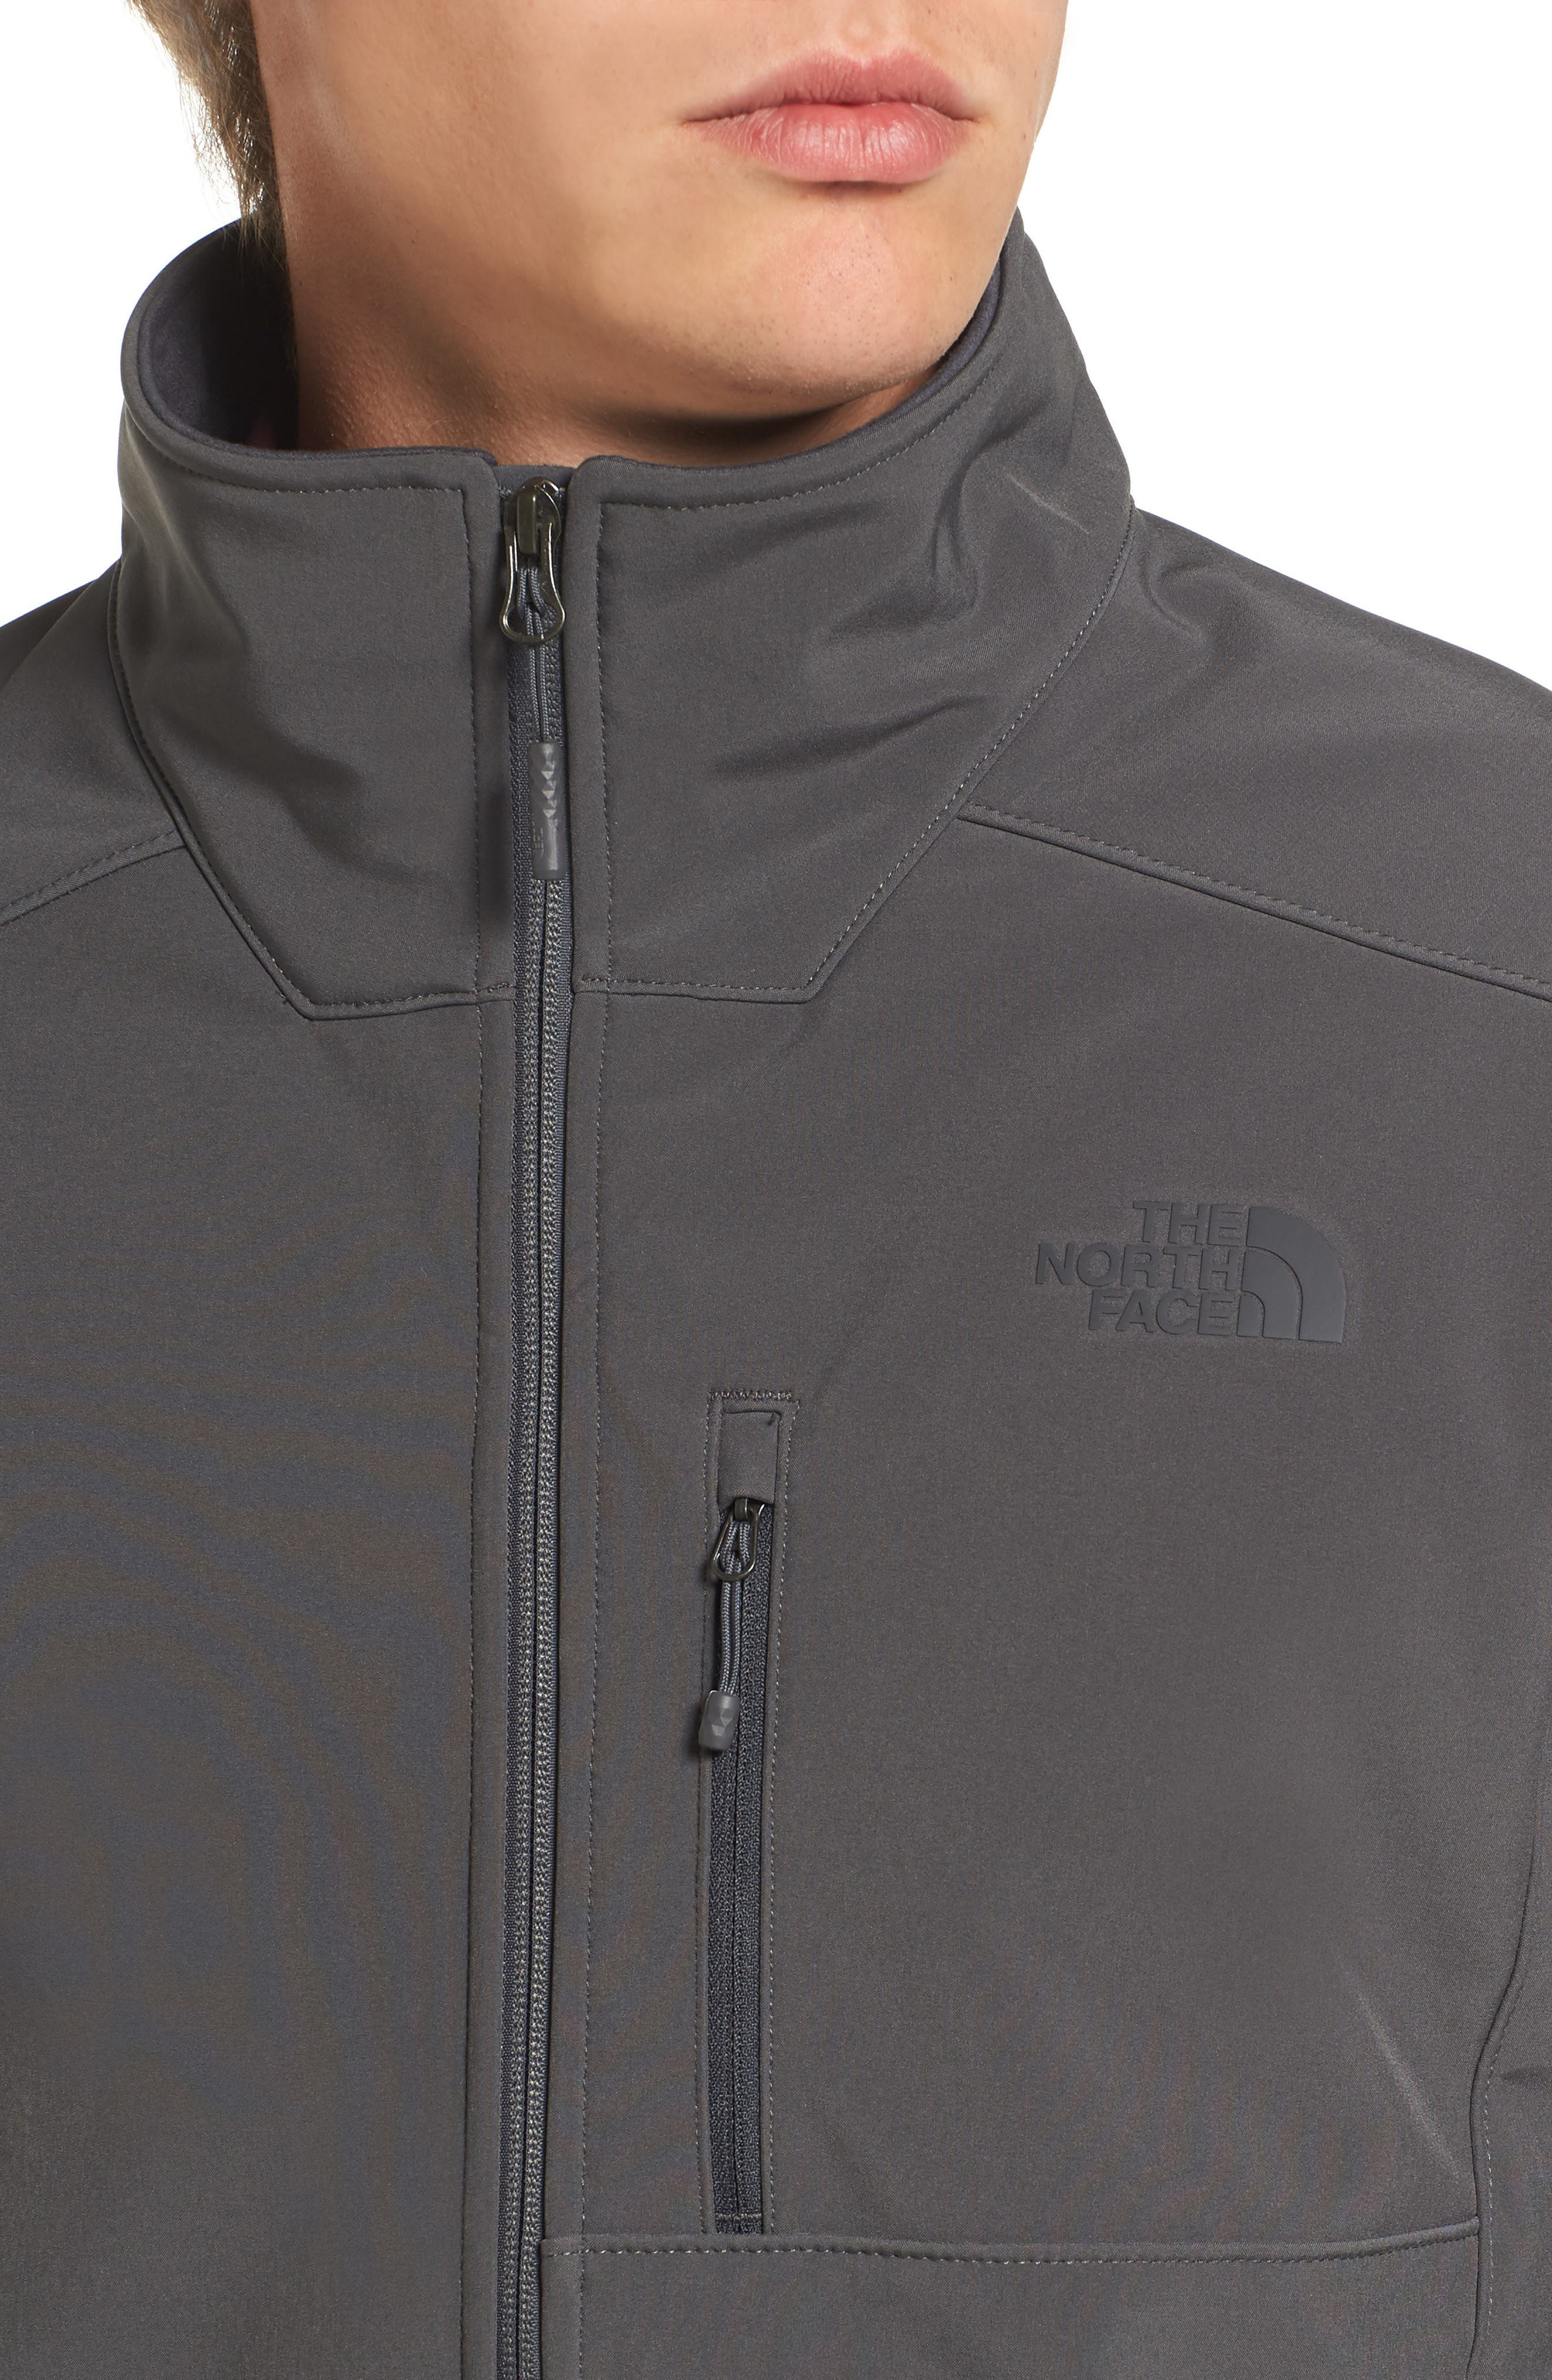 'Apex Bionic 2' Windproof & Water Resistant Soft Shell Jacket,                             Alternate thumbnail 50, color,